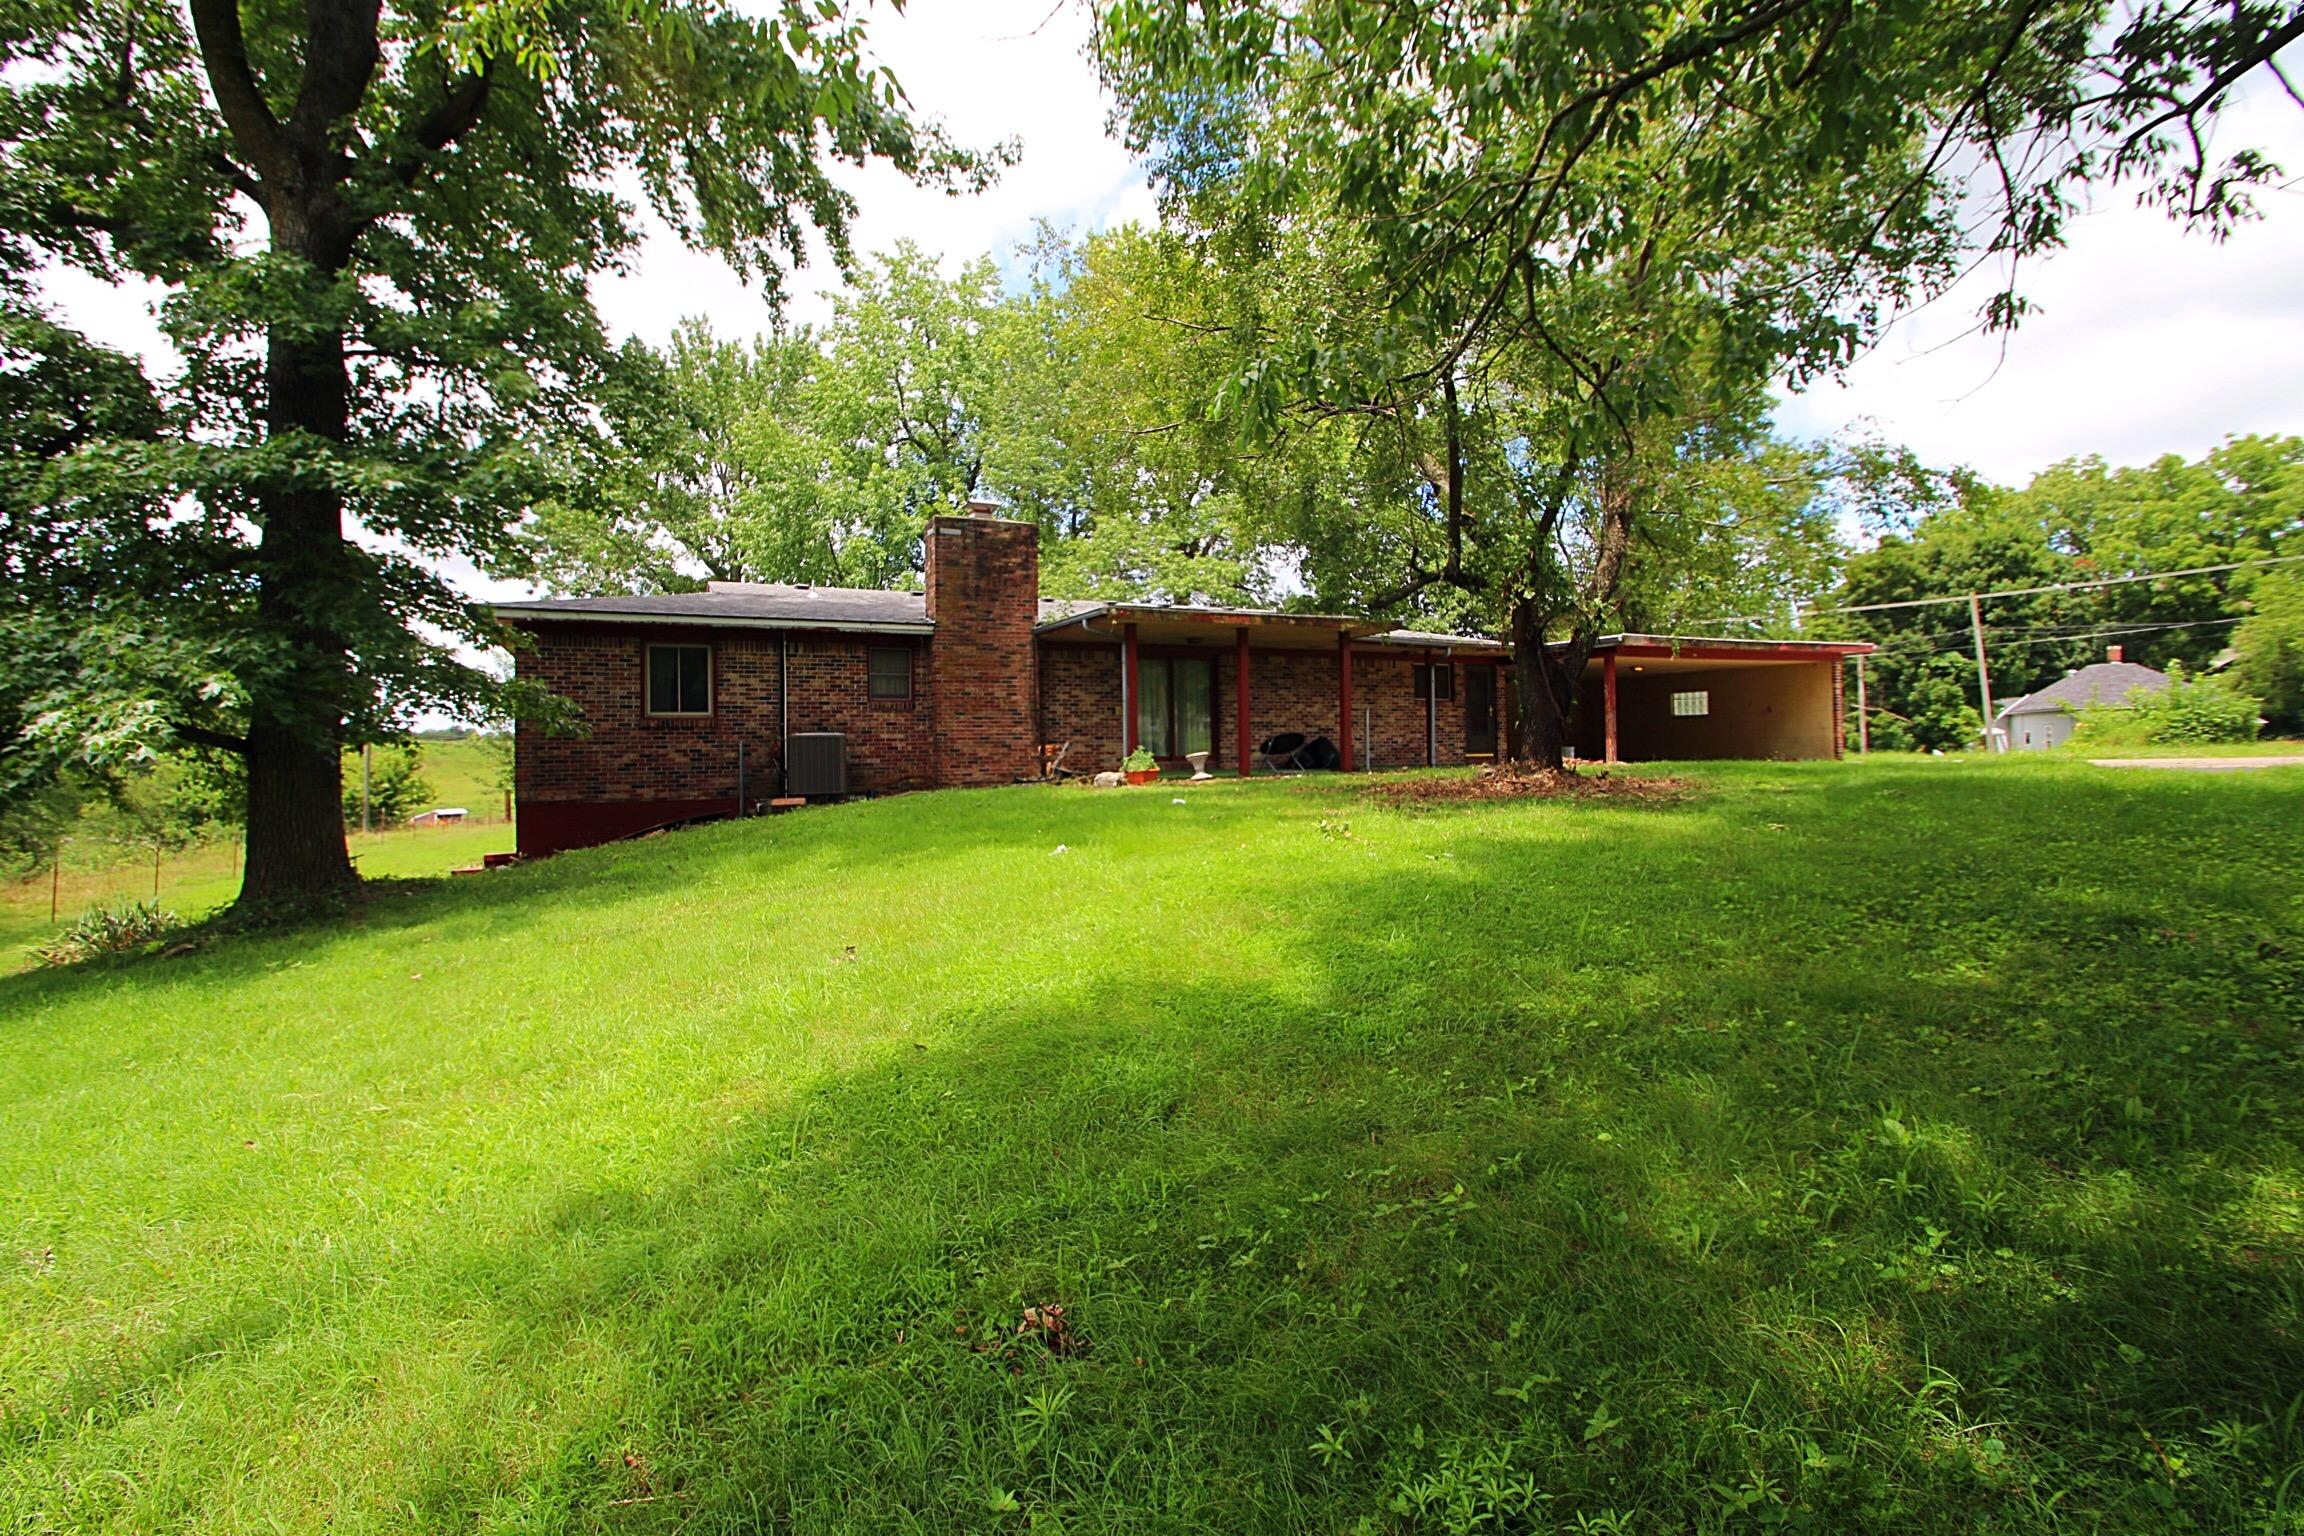 300 South State Highway F Ash Grove, MO 65604